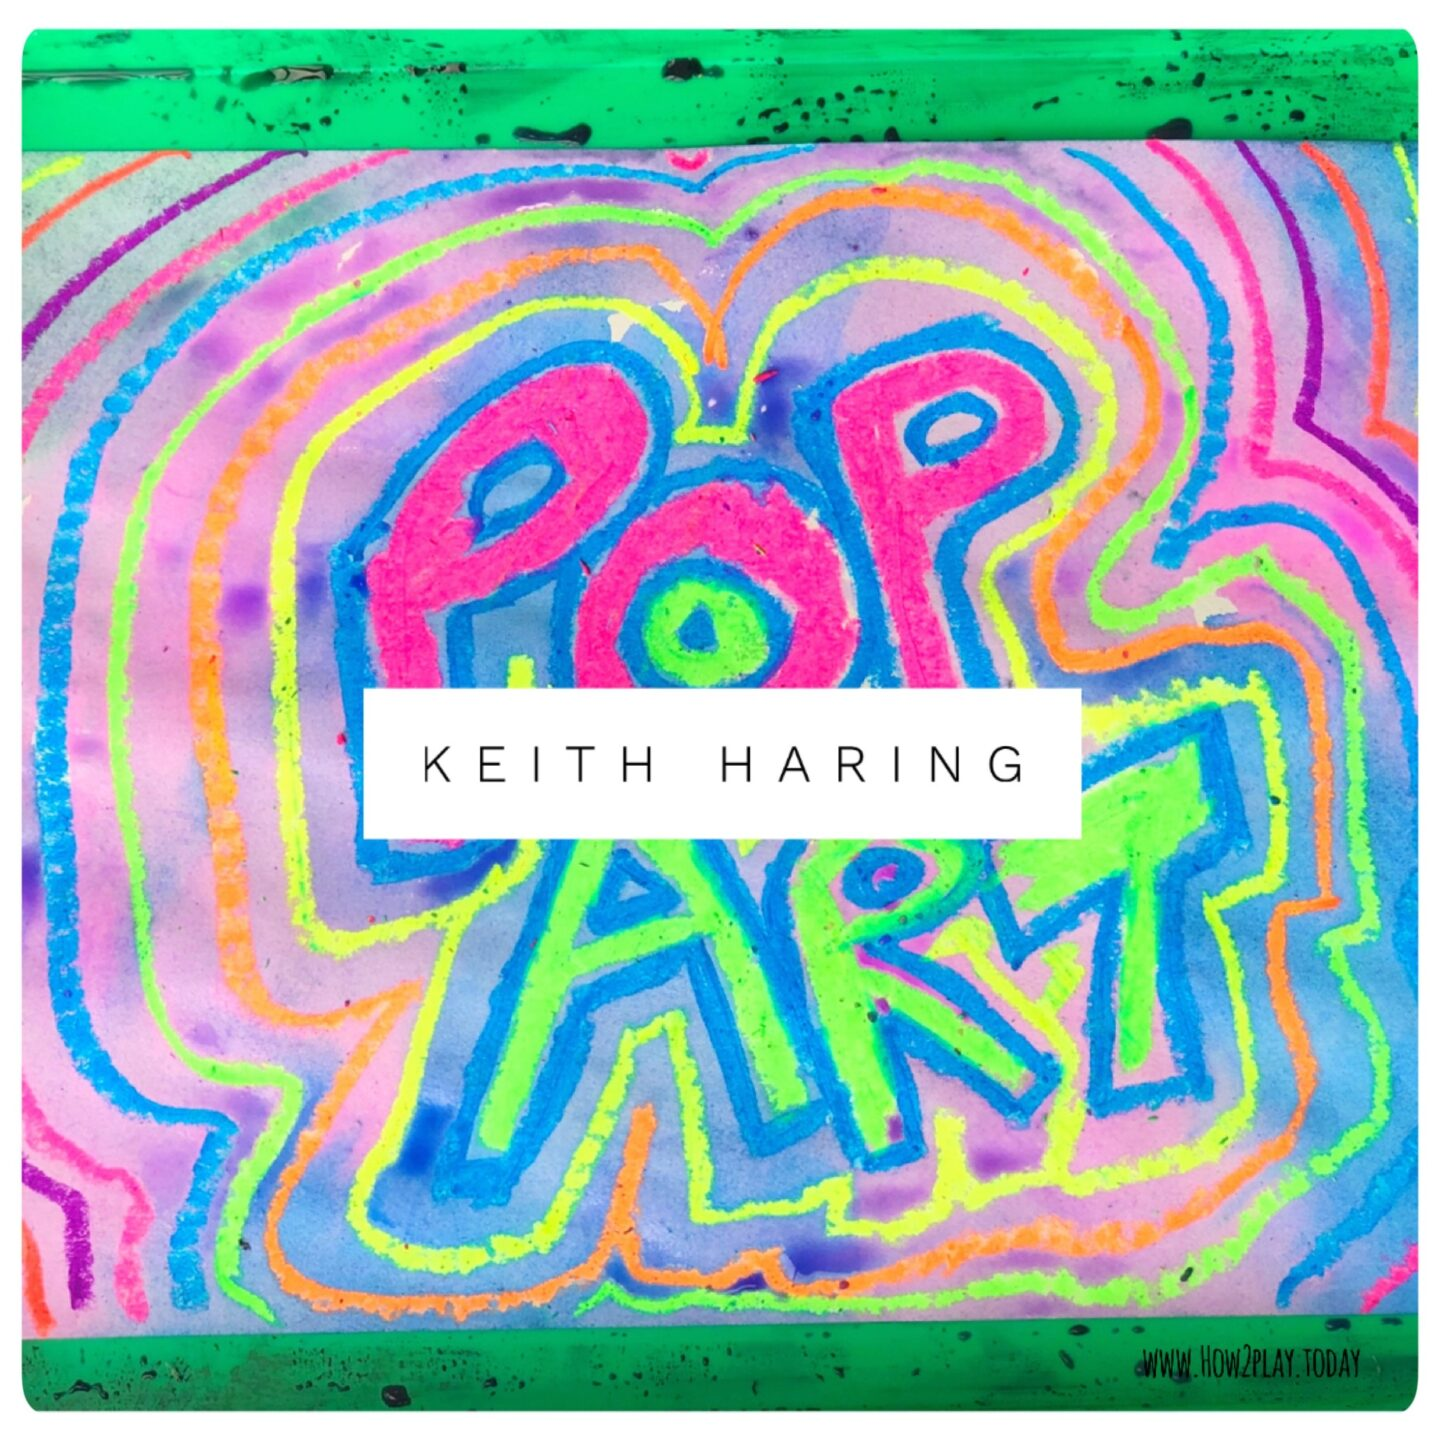 Keith Haring, a famous artist, is primarily known for solid, bold lines with vibrant colors.  His vibrant artwork tells of friendship, fun, and acceptance. Today we're creating interactive ways to think about Pop Art while learning about Keith Haring